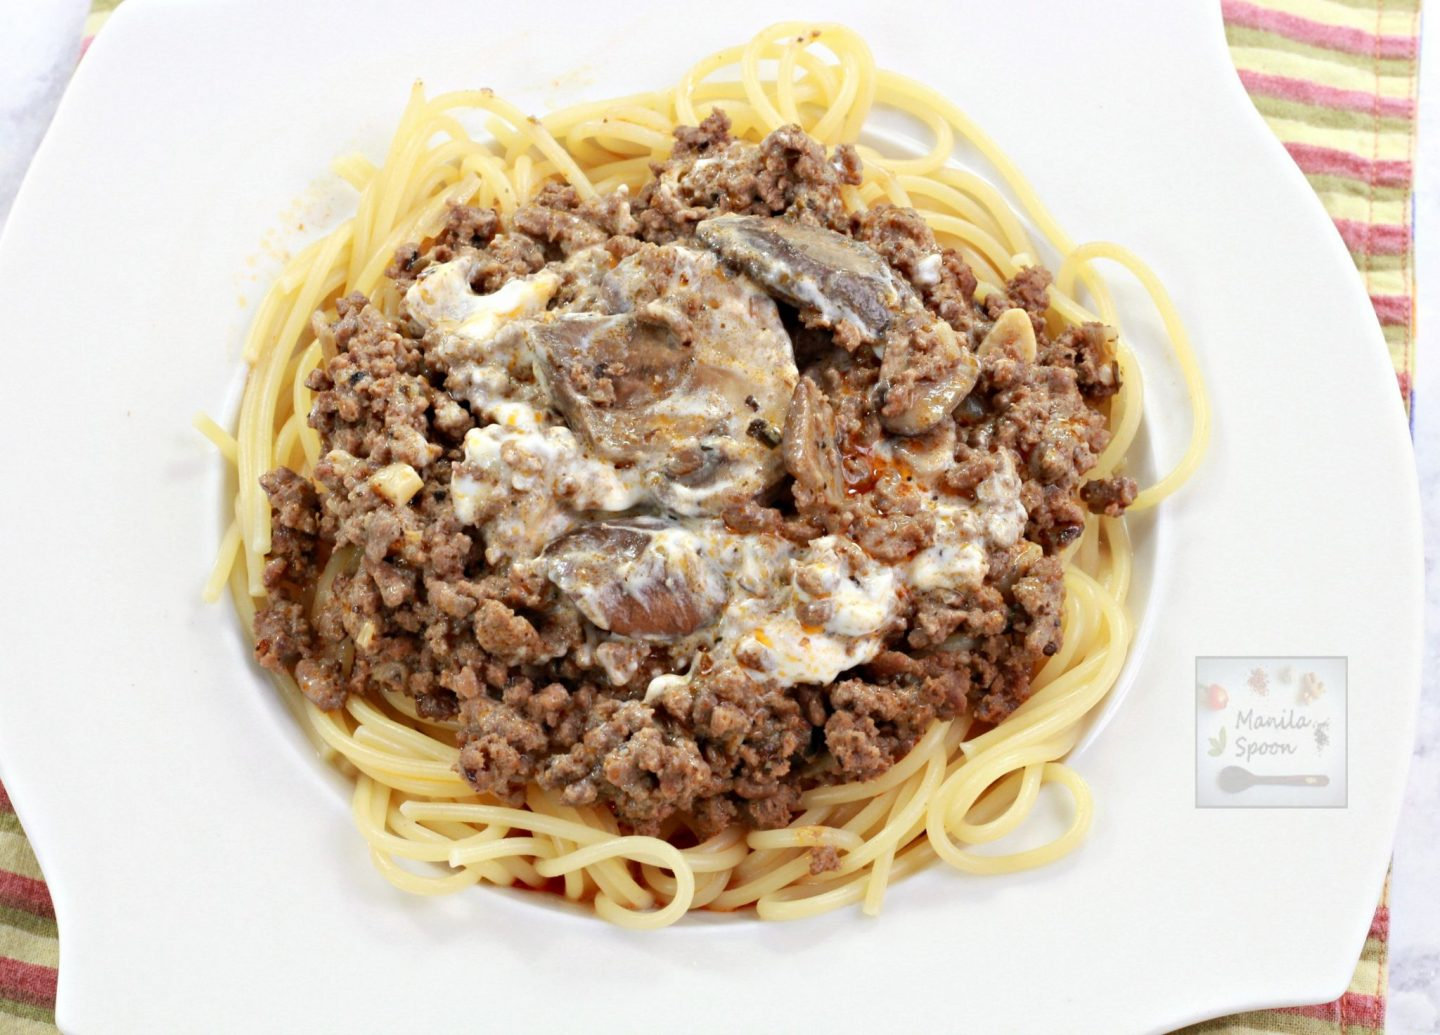 Slowly simmered in red wine this ground beef stroganoff is over the top yummy! A huge family favorite!